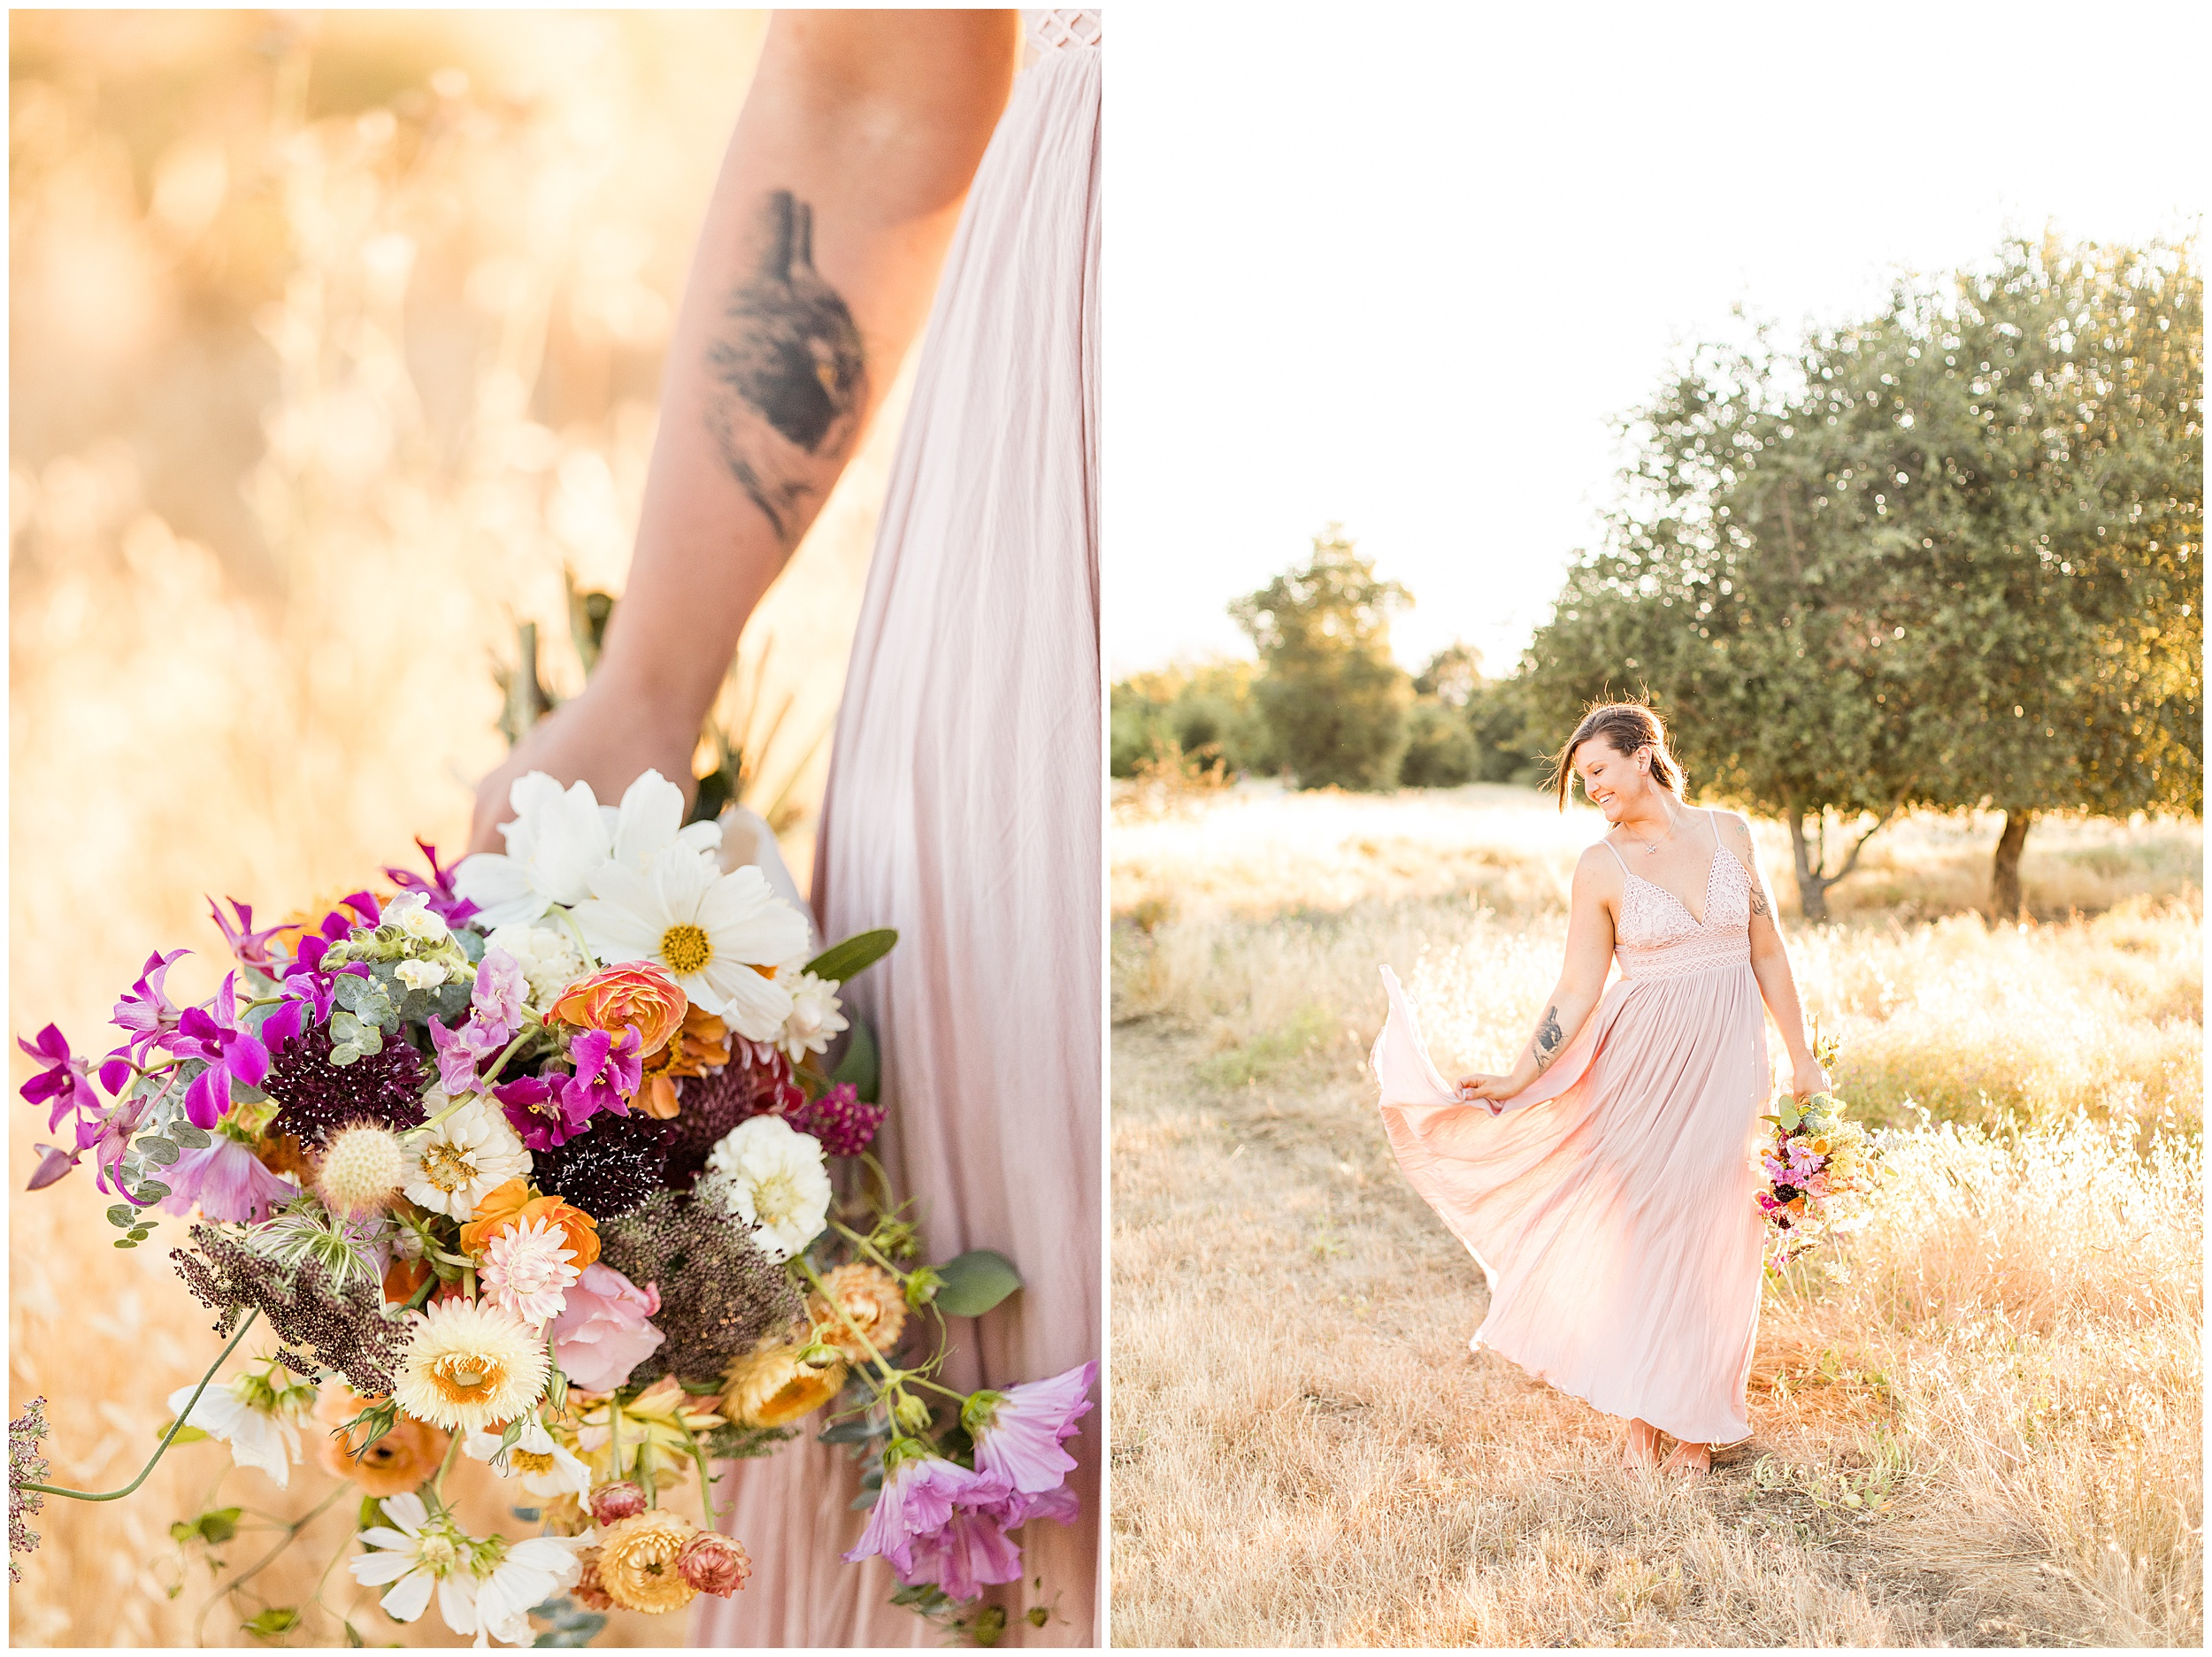 2019 bay area wedding photographer colorful florals flowers styled engagement session Angela Sue Photography_0004.jpg